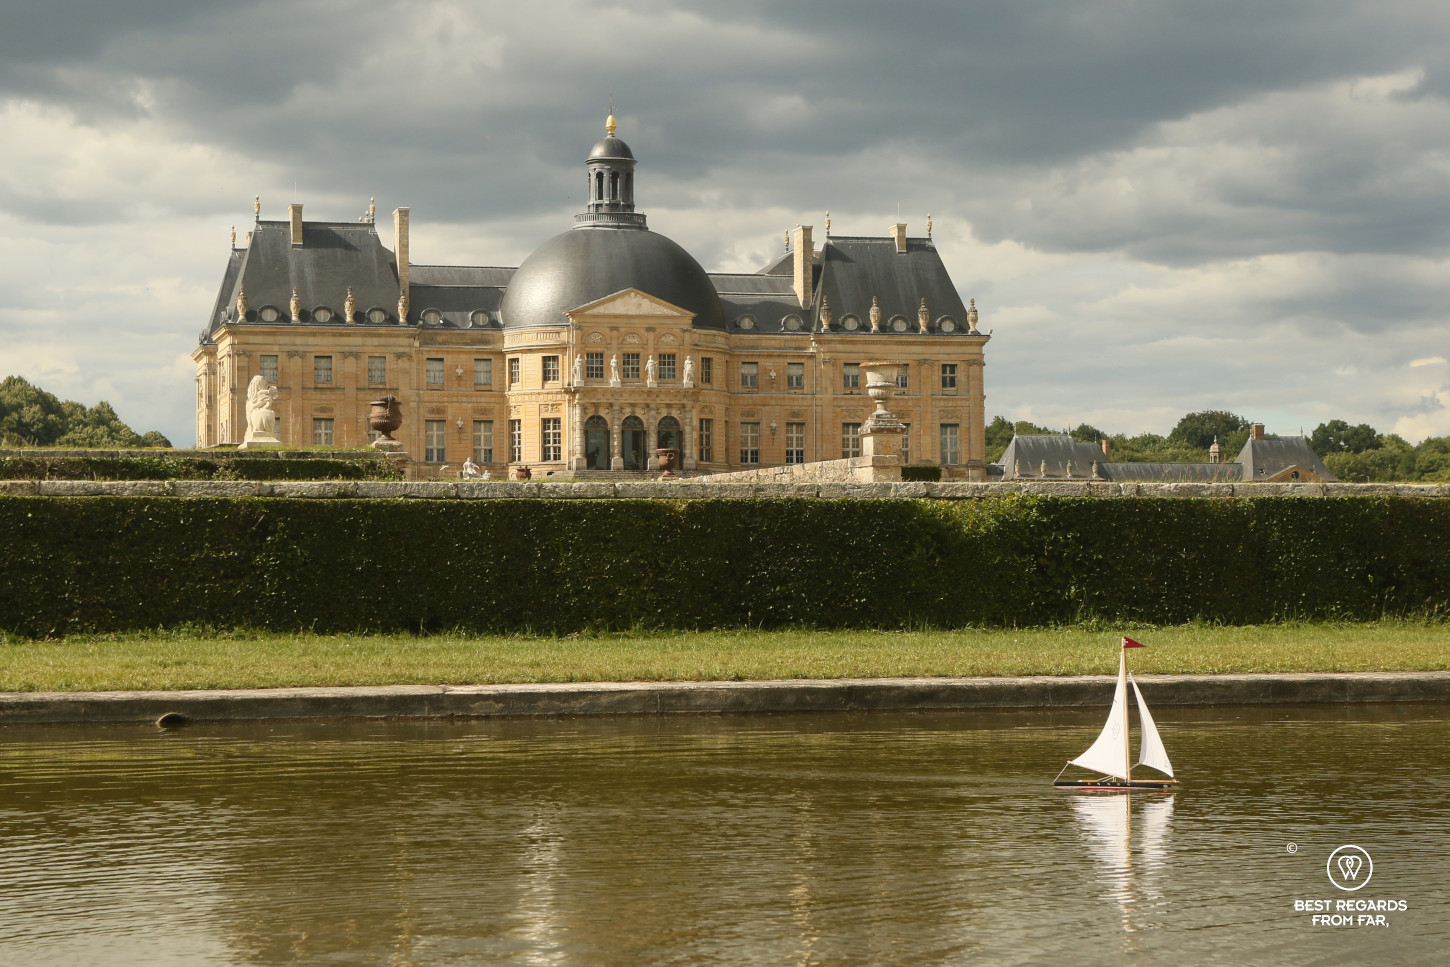 Castle of Vaux-le-Vicomte and its water pieces in which a model boat sails.